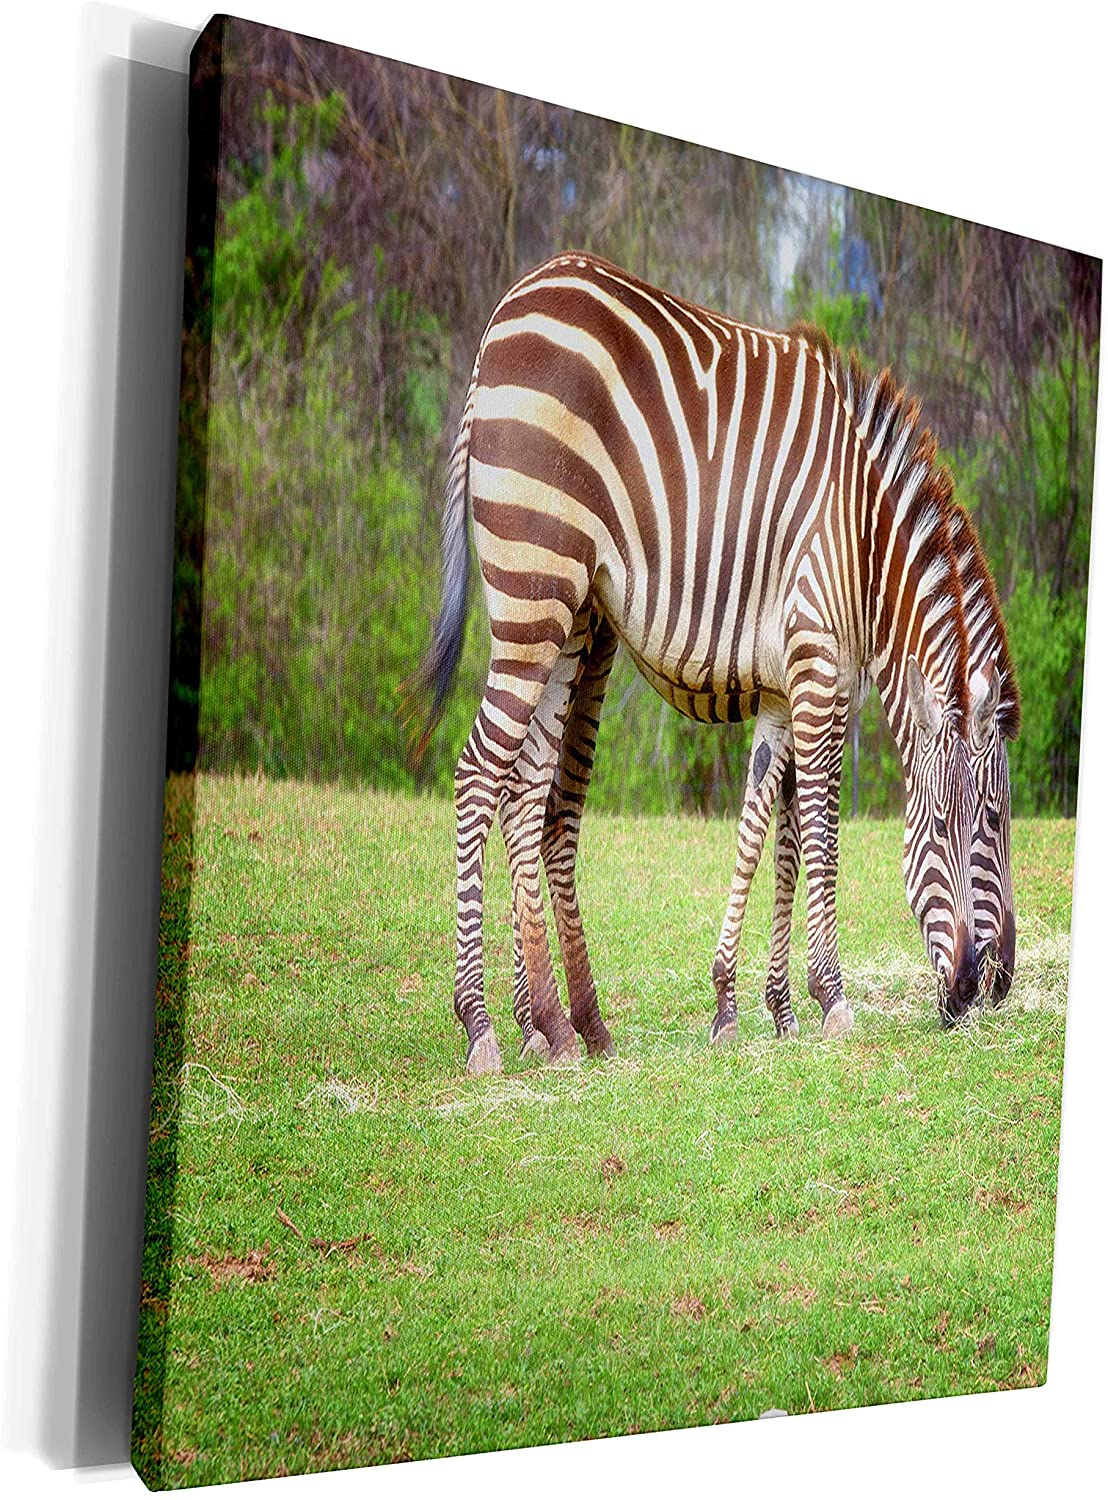 3dRose Mike Swindle Photography - Animals - Zebras eating grass - Museum Grade Canvas Wrap (cw_302557_1)